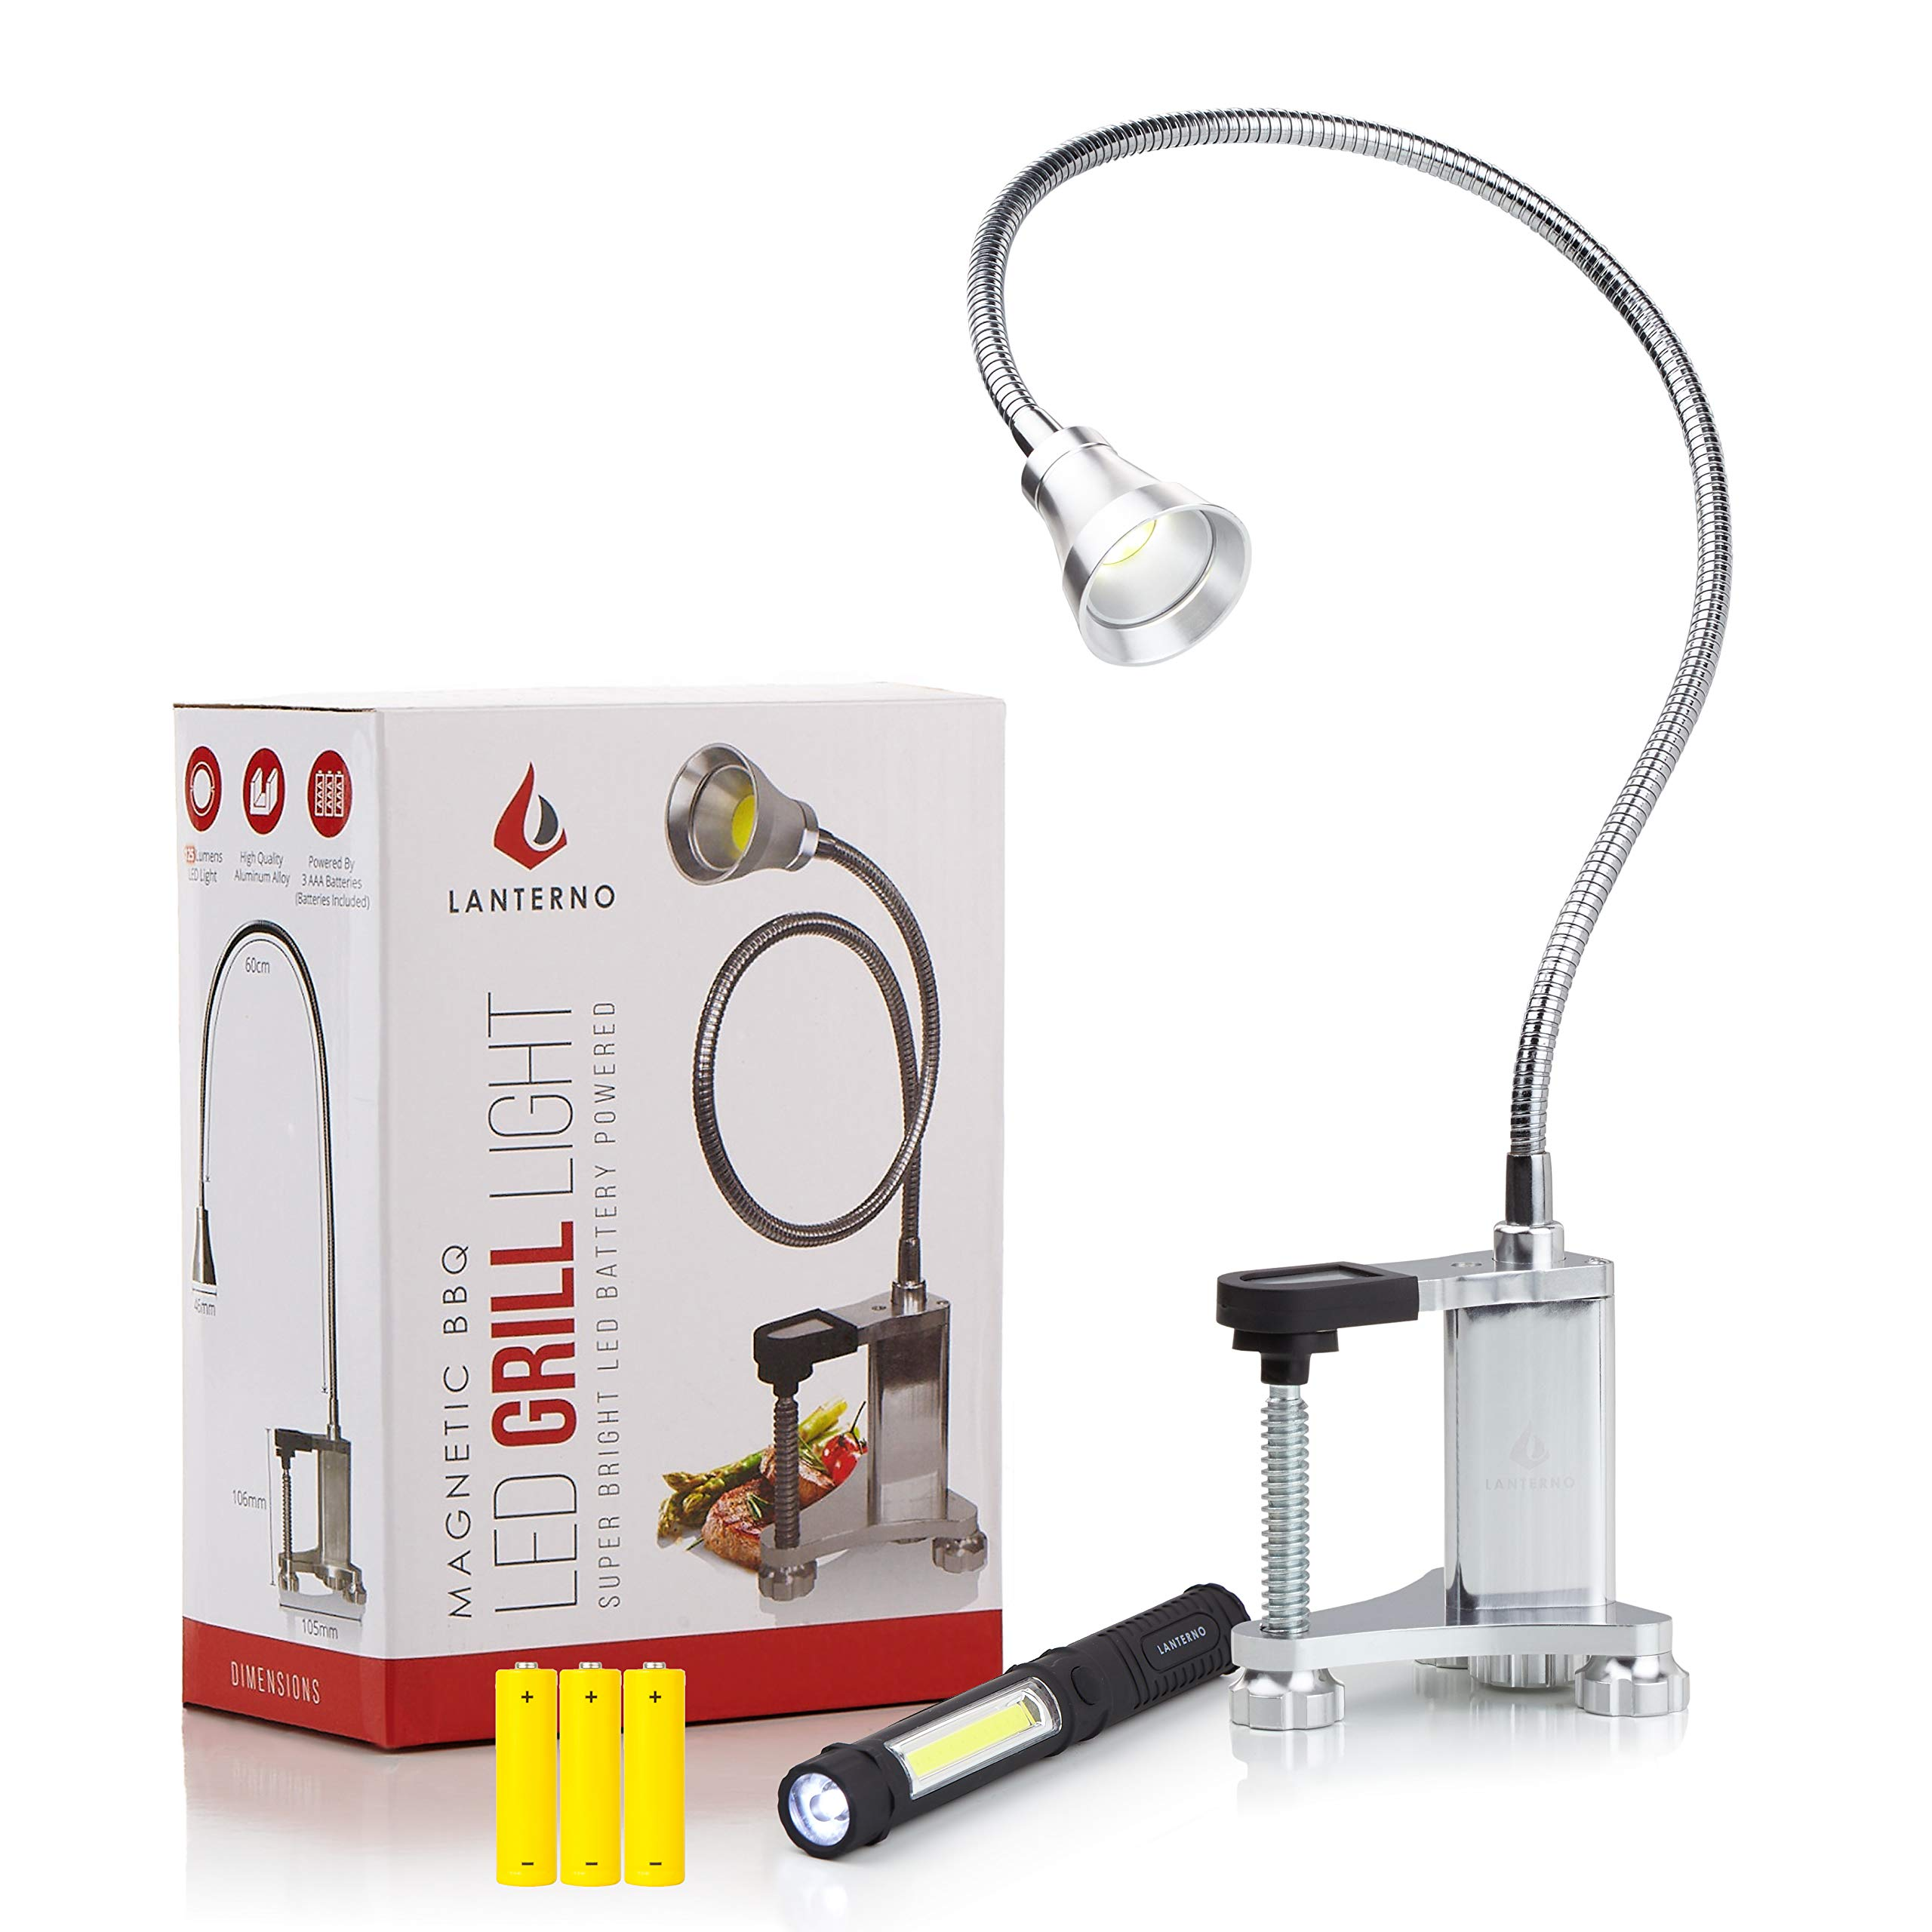 Grill Light for BBQ | Magnetic LED Lamp | Work Bench Accessories Flexible Gooseneck | Sewing Machine Lathes Jet Band Saw | Metal | Adjustable | Gas | Desk | Outdoor Industrial | Weatherproof | Clamp by Lanterno